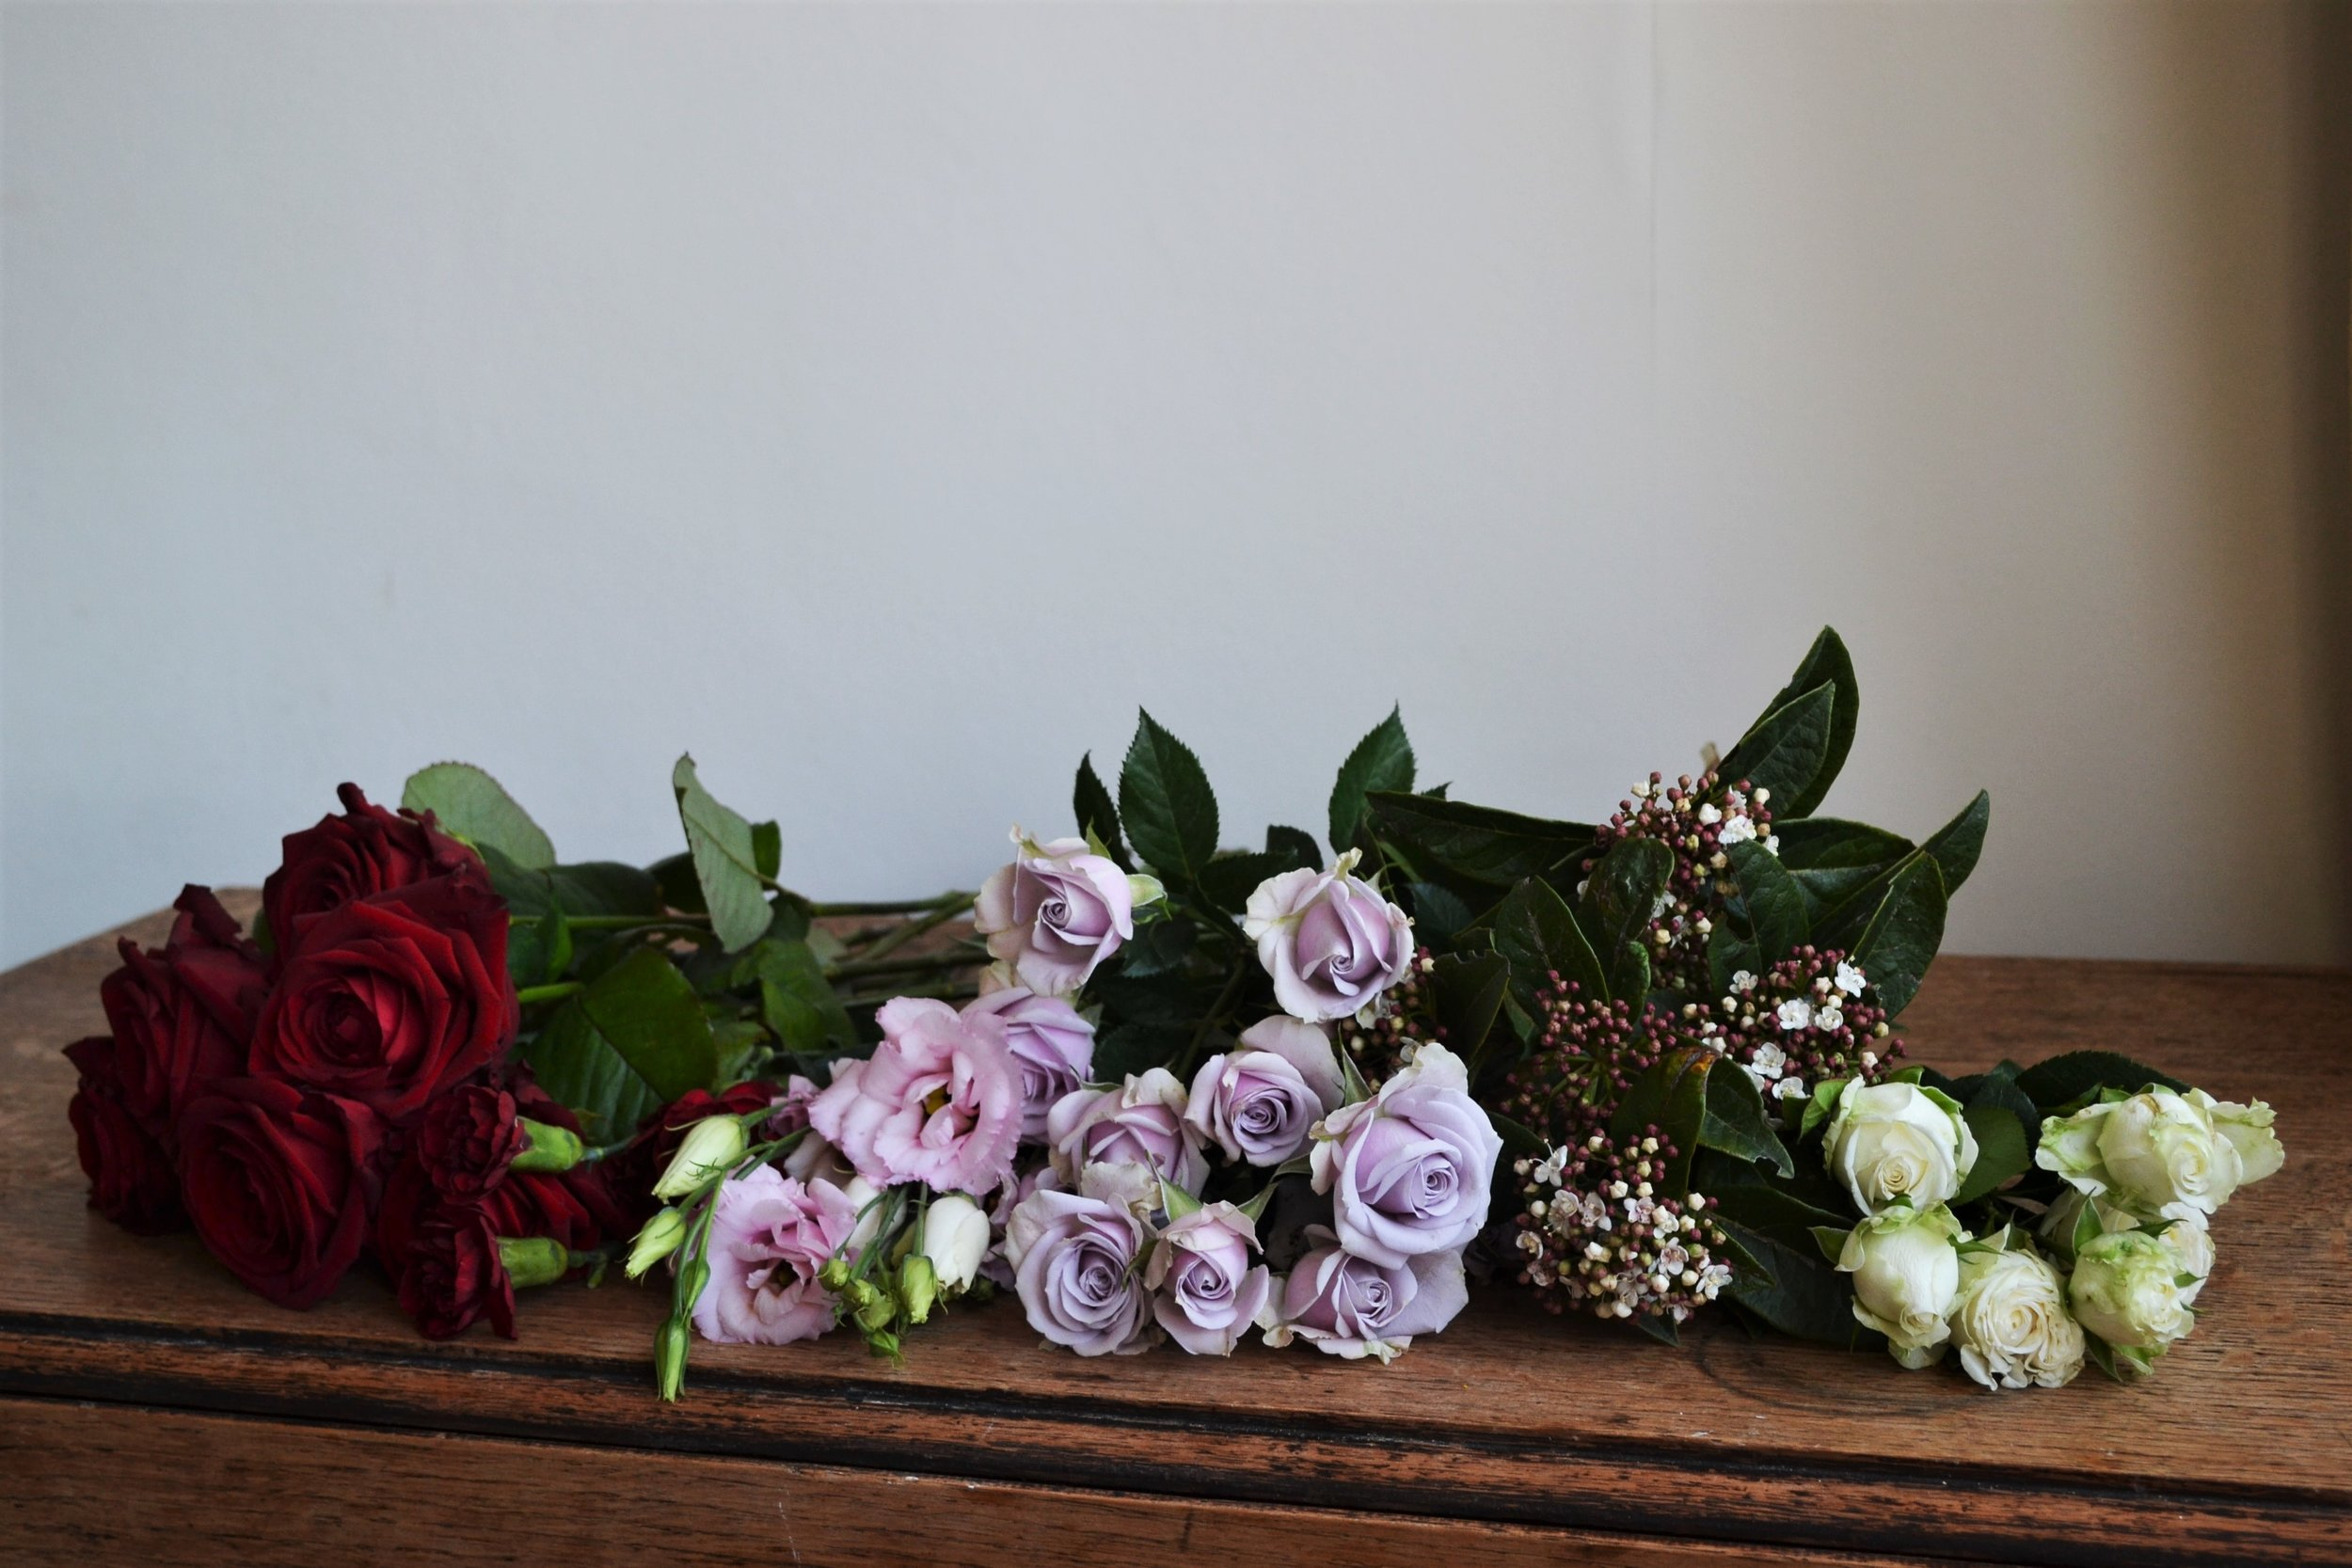 Webb-and-Farrer-Brighton-Florist-Sussex-Wedding-Flowers-Blush-Pink-Burgundy-Bridal-Bouquet (3).JPG